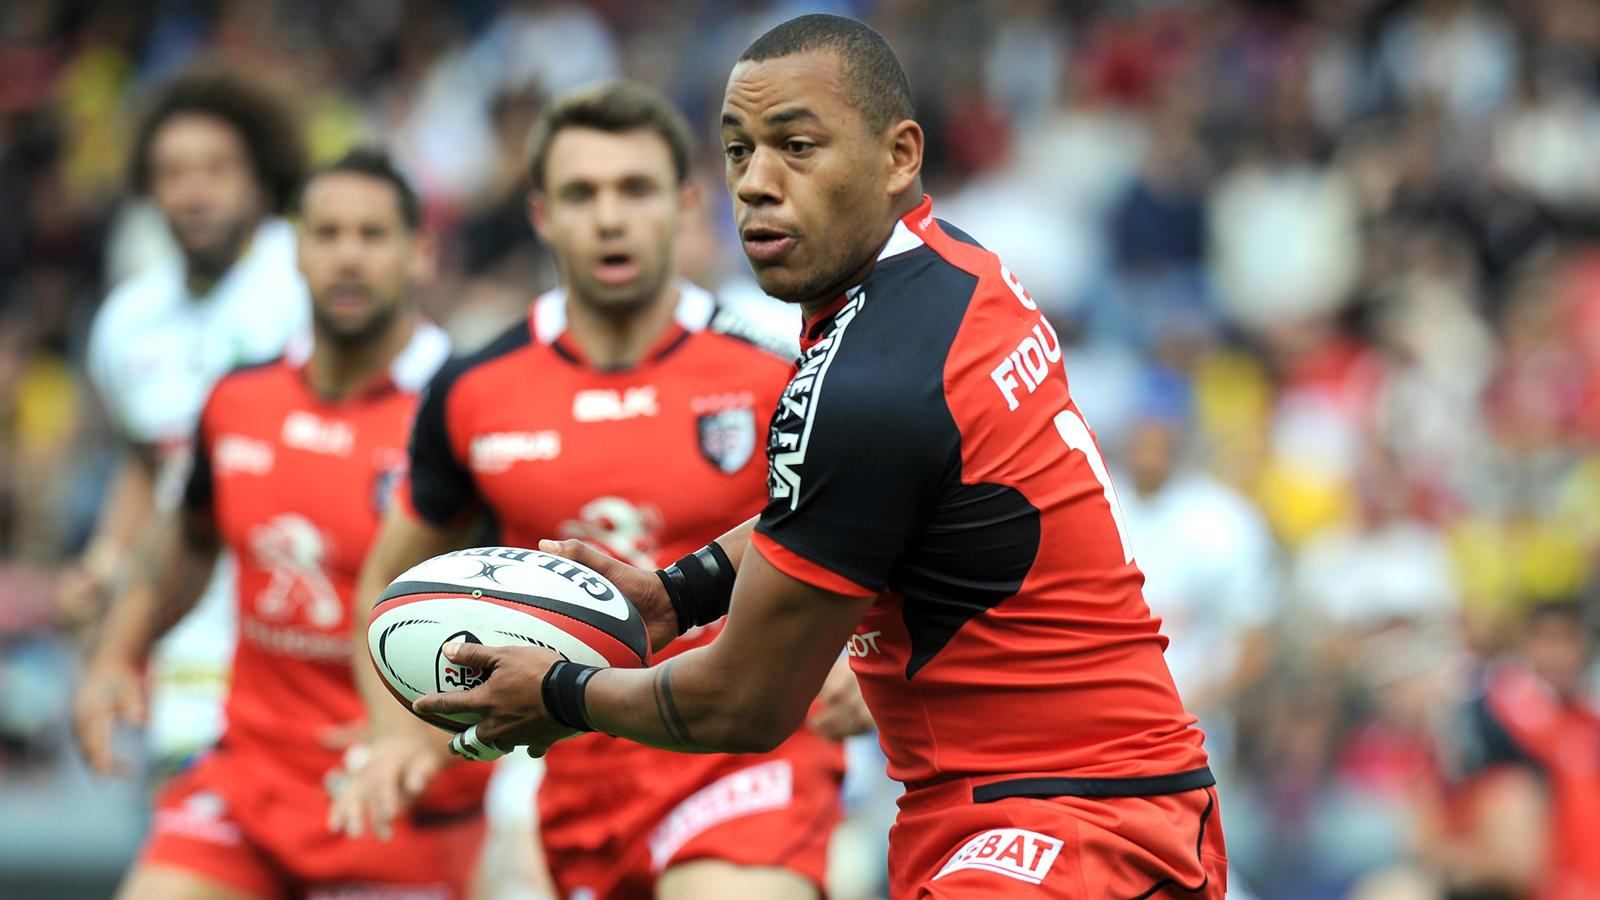 Gaël Fickou (Toulouse) contre Clermont - 29 mai 2016